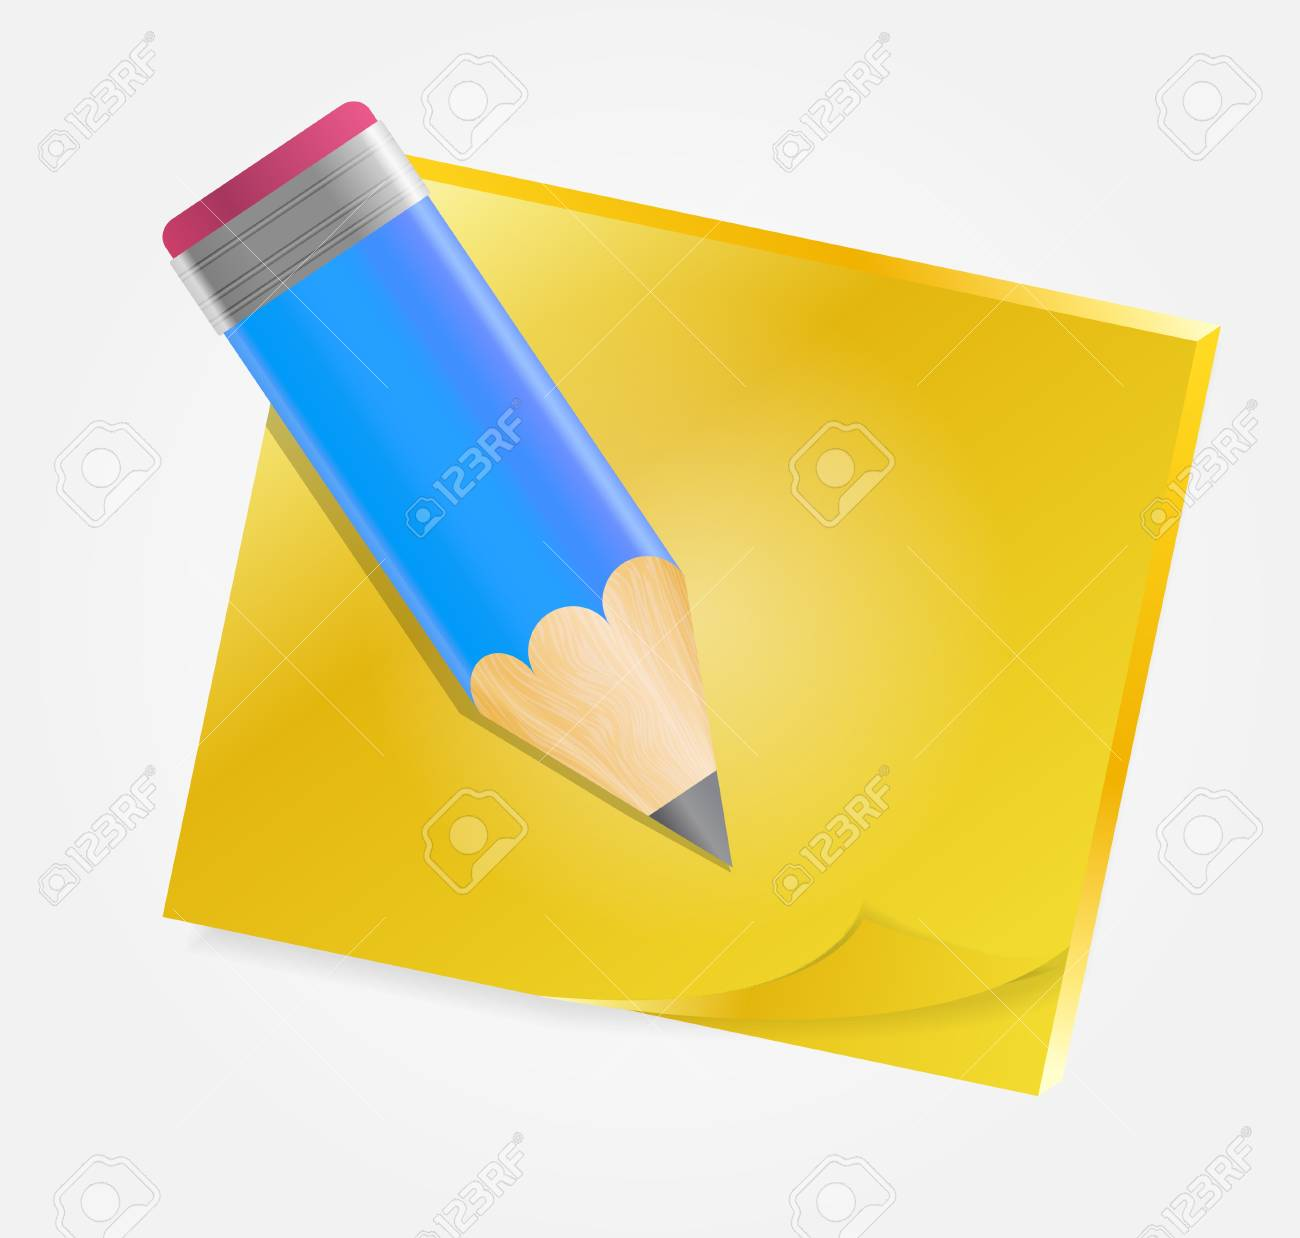 Yellow paper with pencil illustration Stock Vector - 20831381